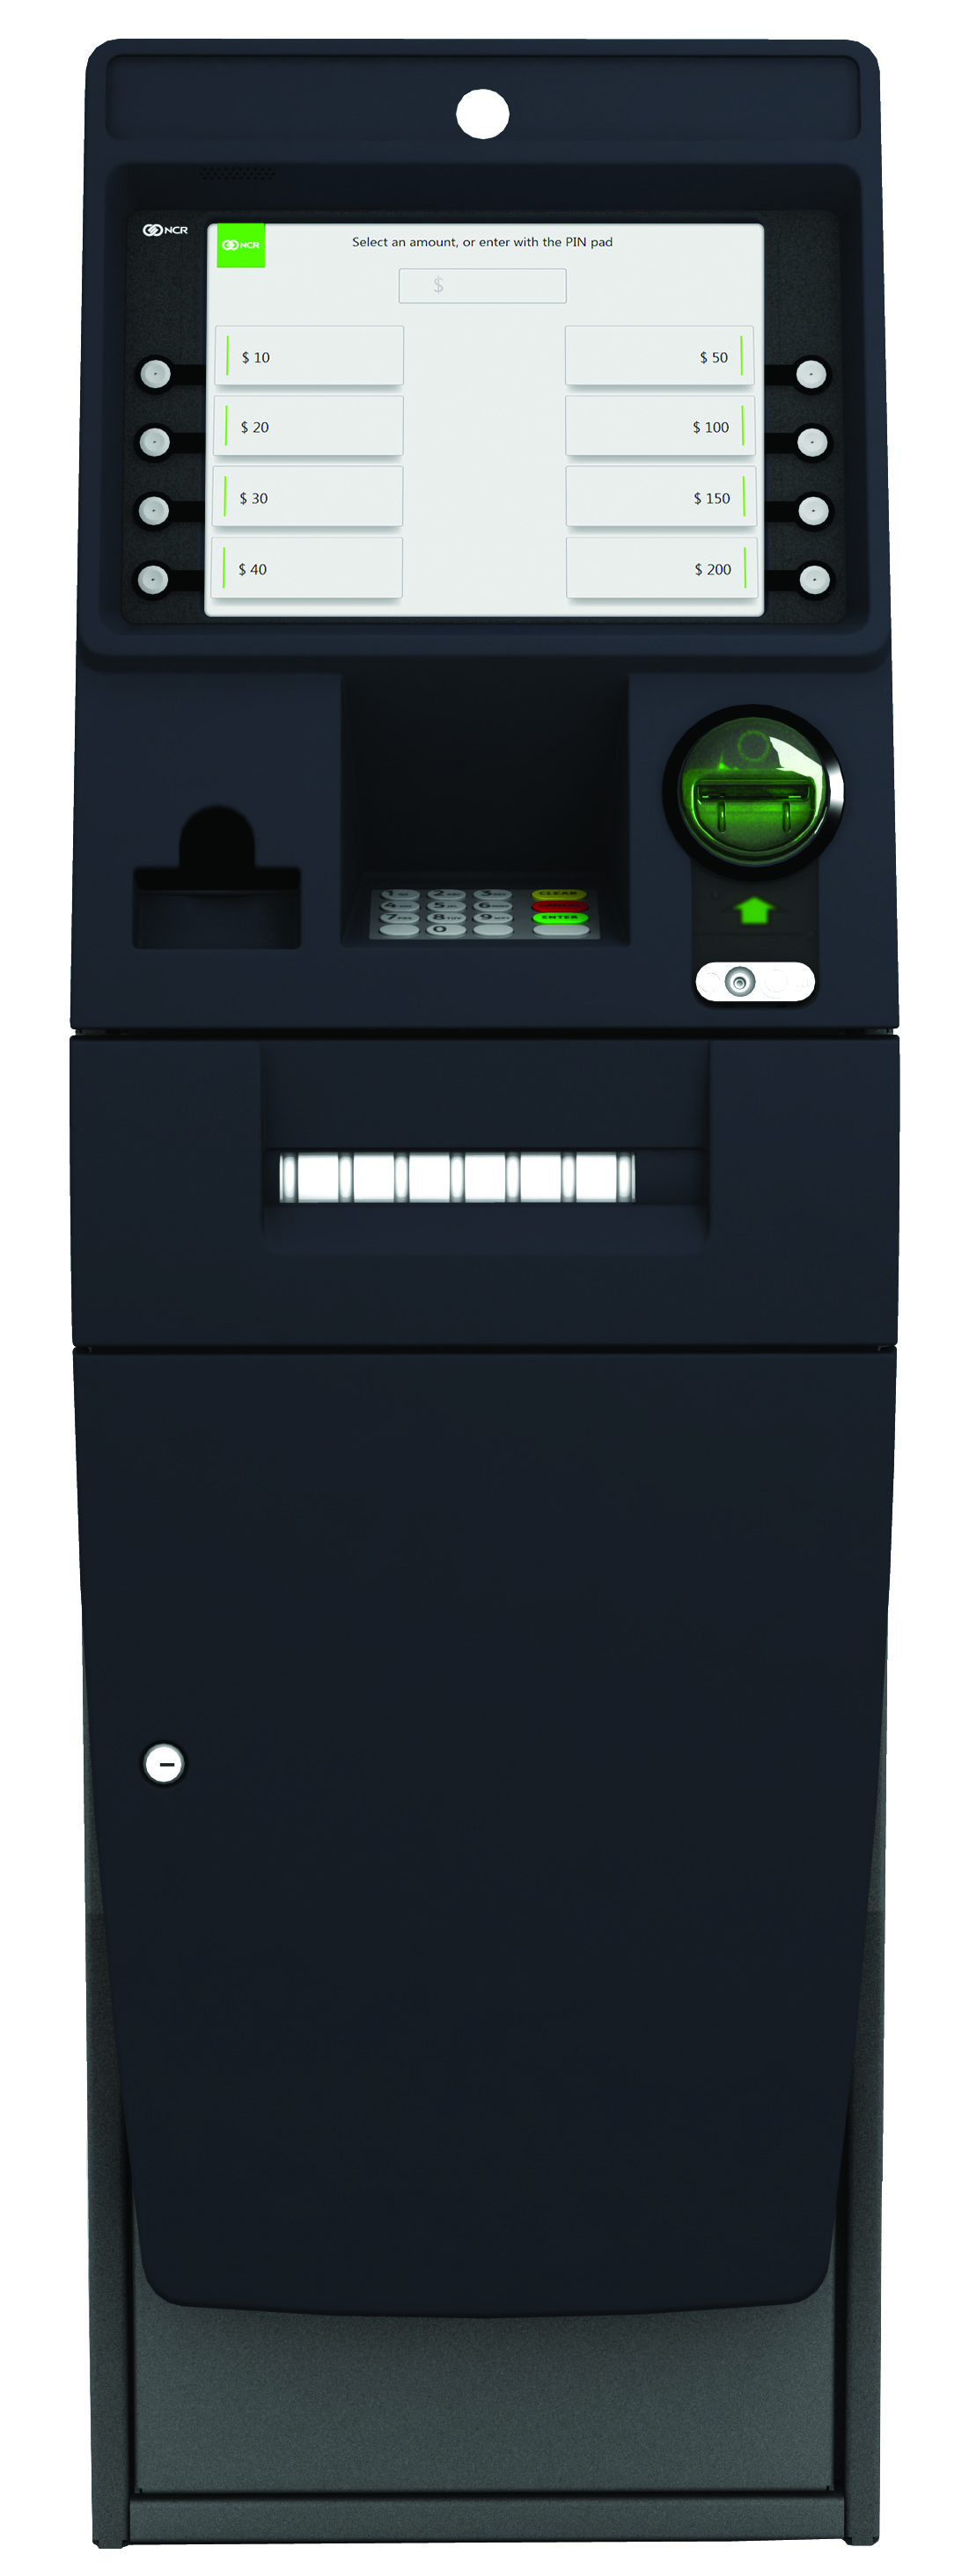 NCR SelfServ 22e is a compact interior cash dispense ATM, providing the perfect solution to connect consumers to cash.